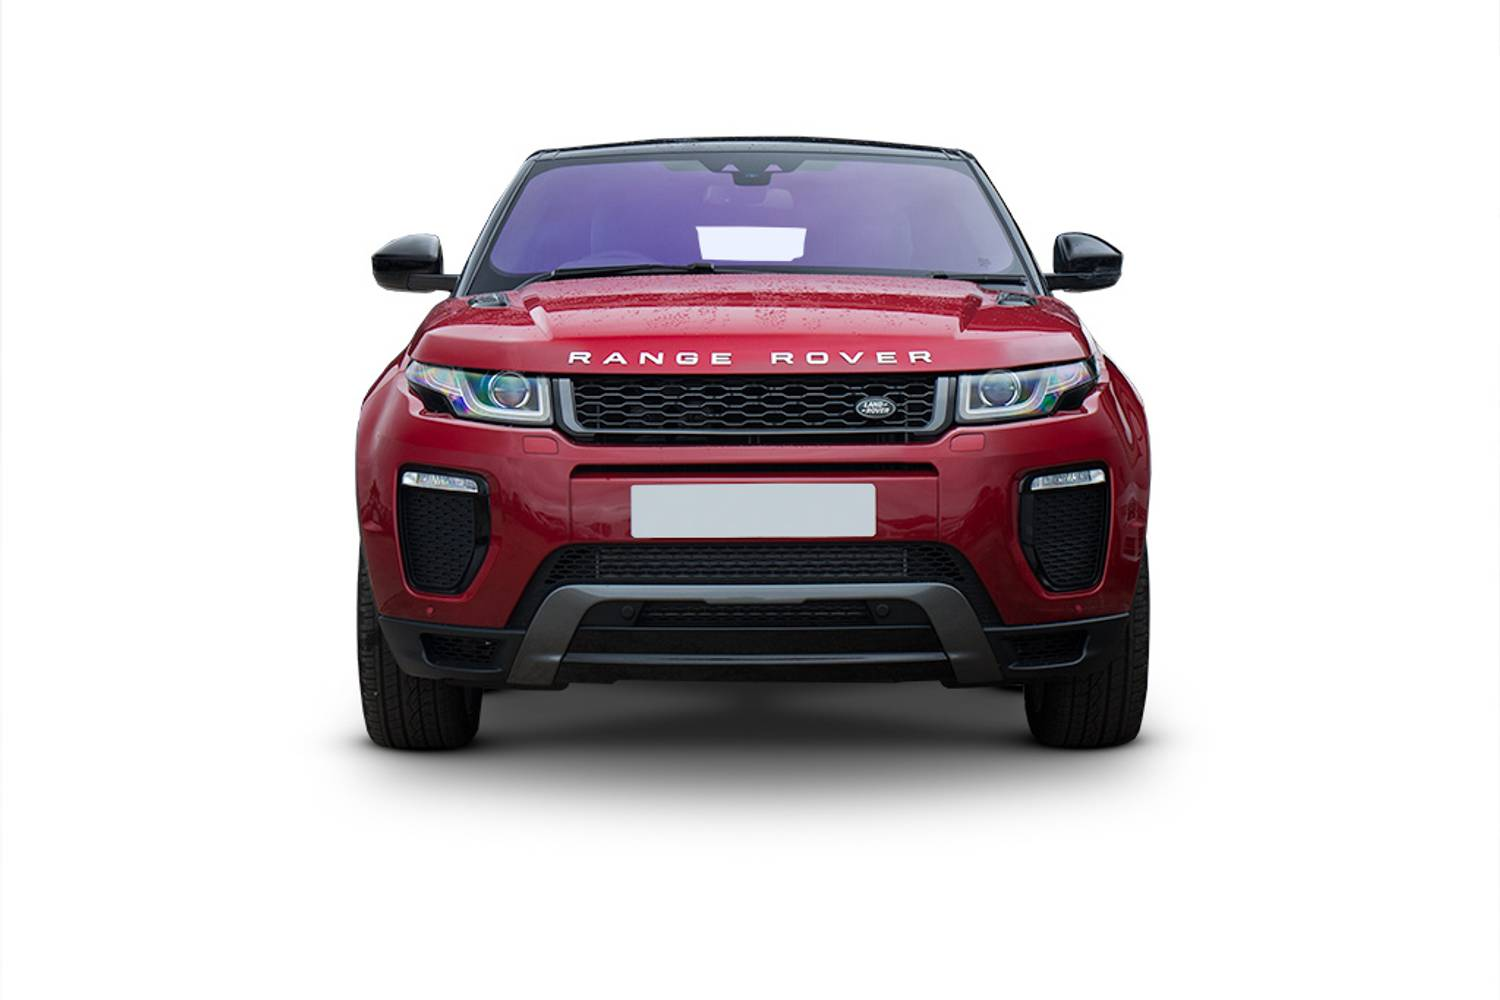 new range rover evoque coupe 2 0 si4 290 ps hse dynamic lux 3 door auto 2017 for sale. Black Bedroom Furniture Sets. Home Design Ideas